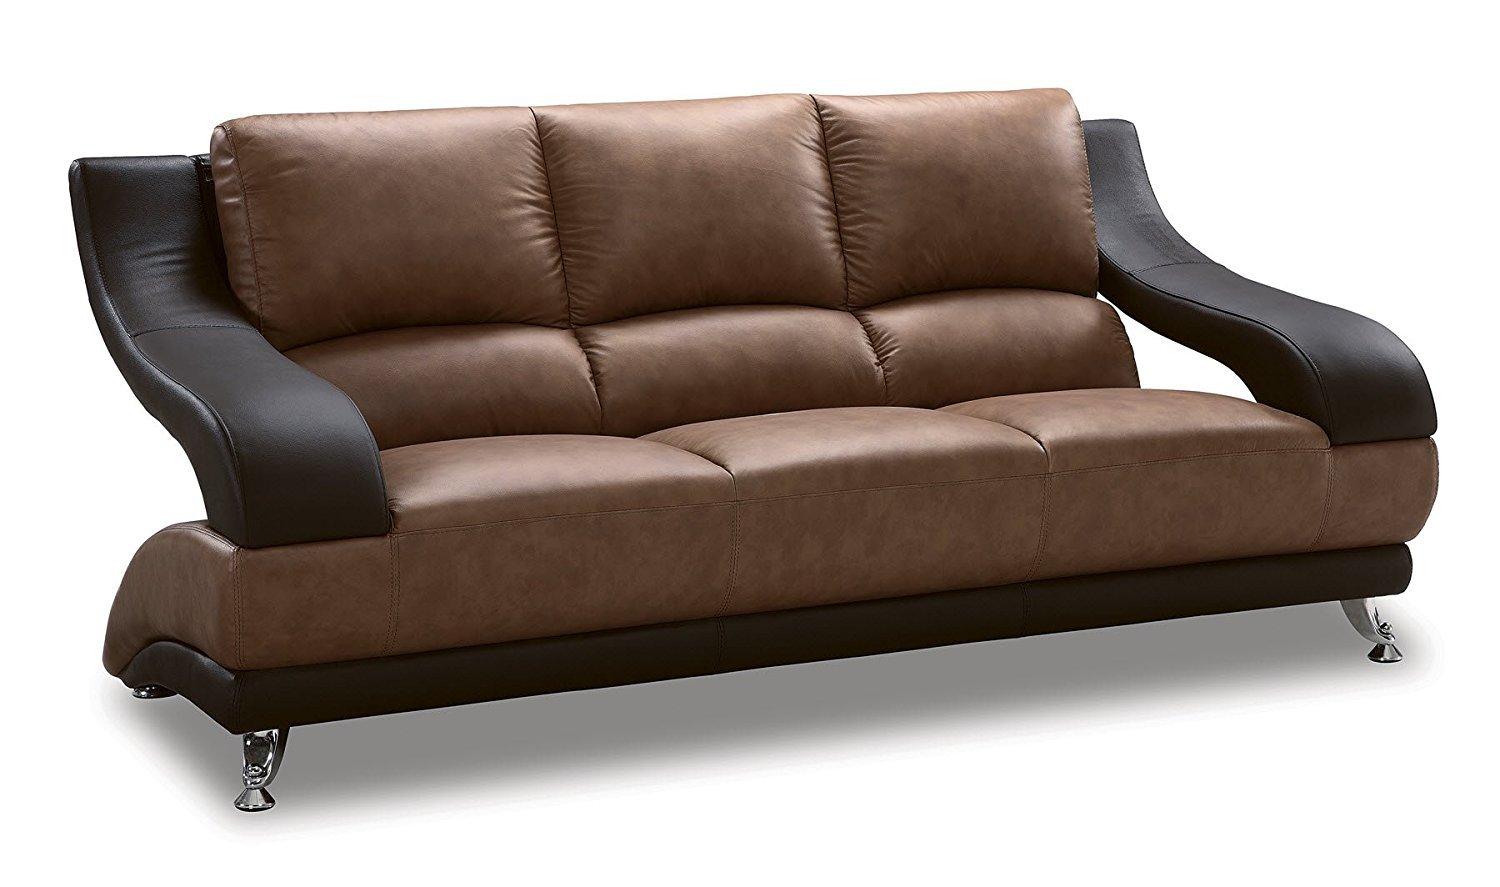 Leather Furniture Traveler Collection: Global Furniture Wyatt Collection Leather Matching Sofa